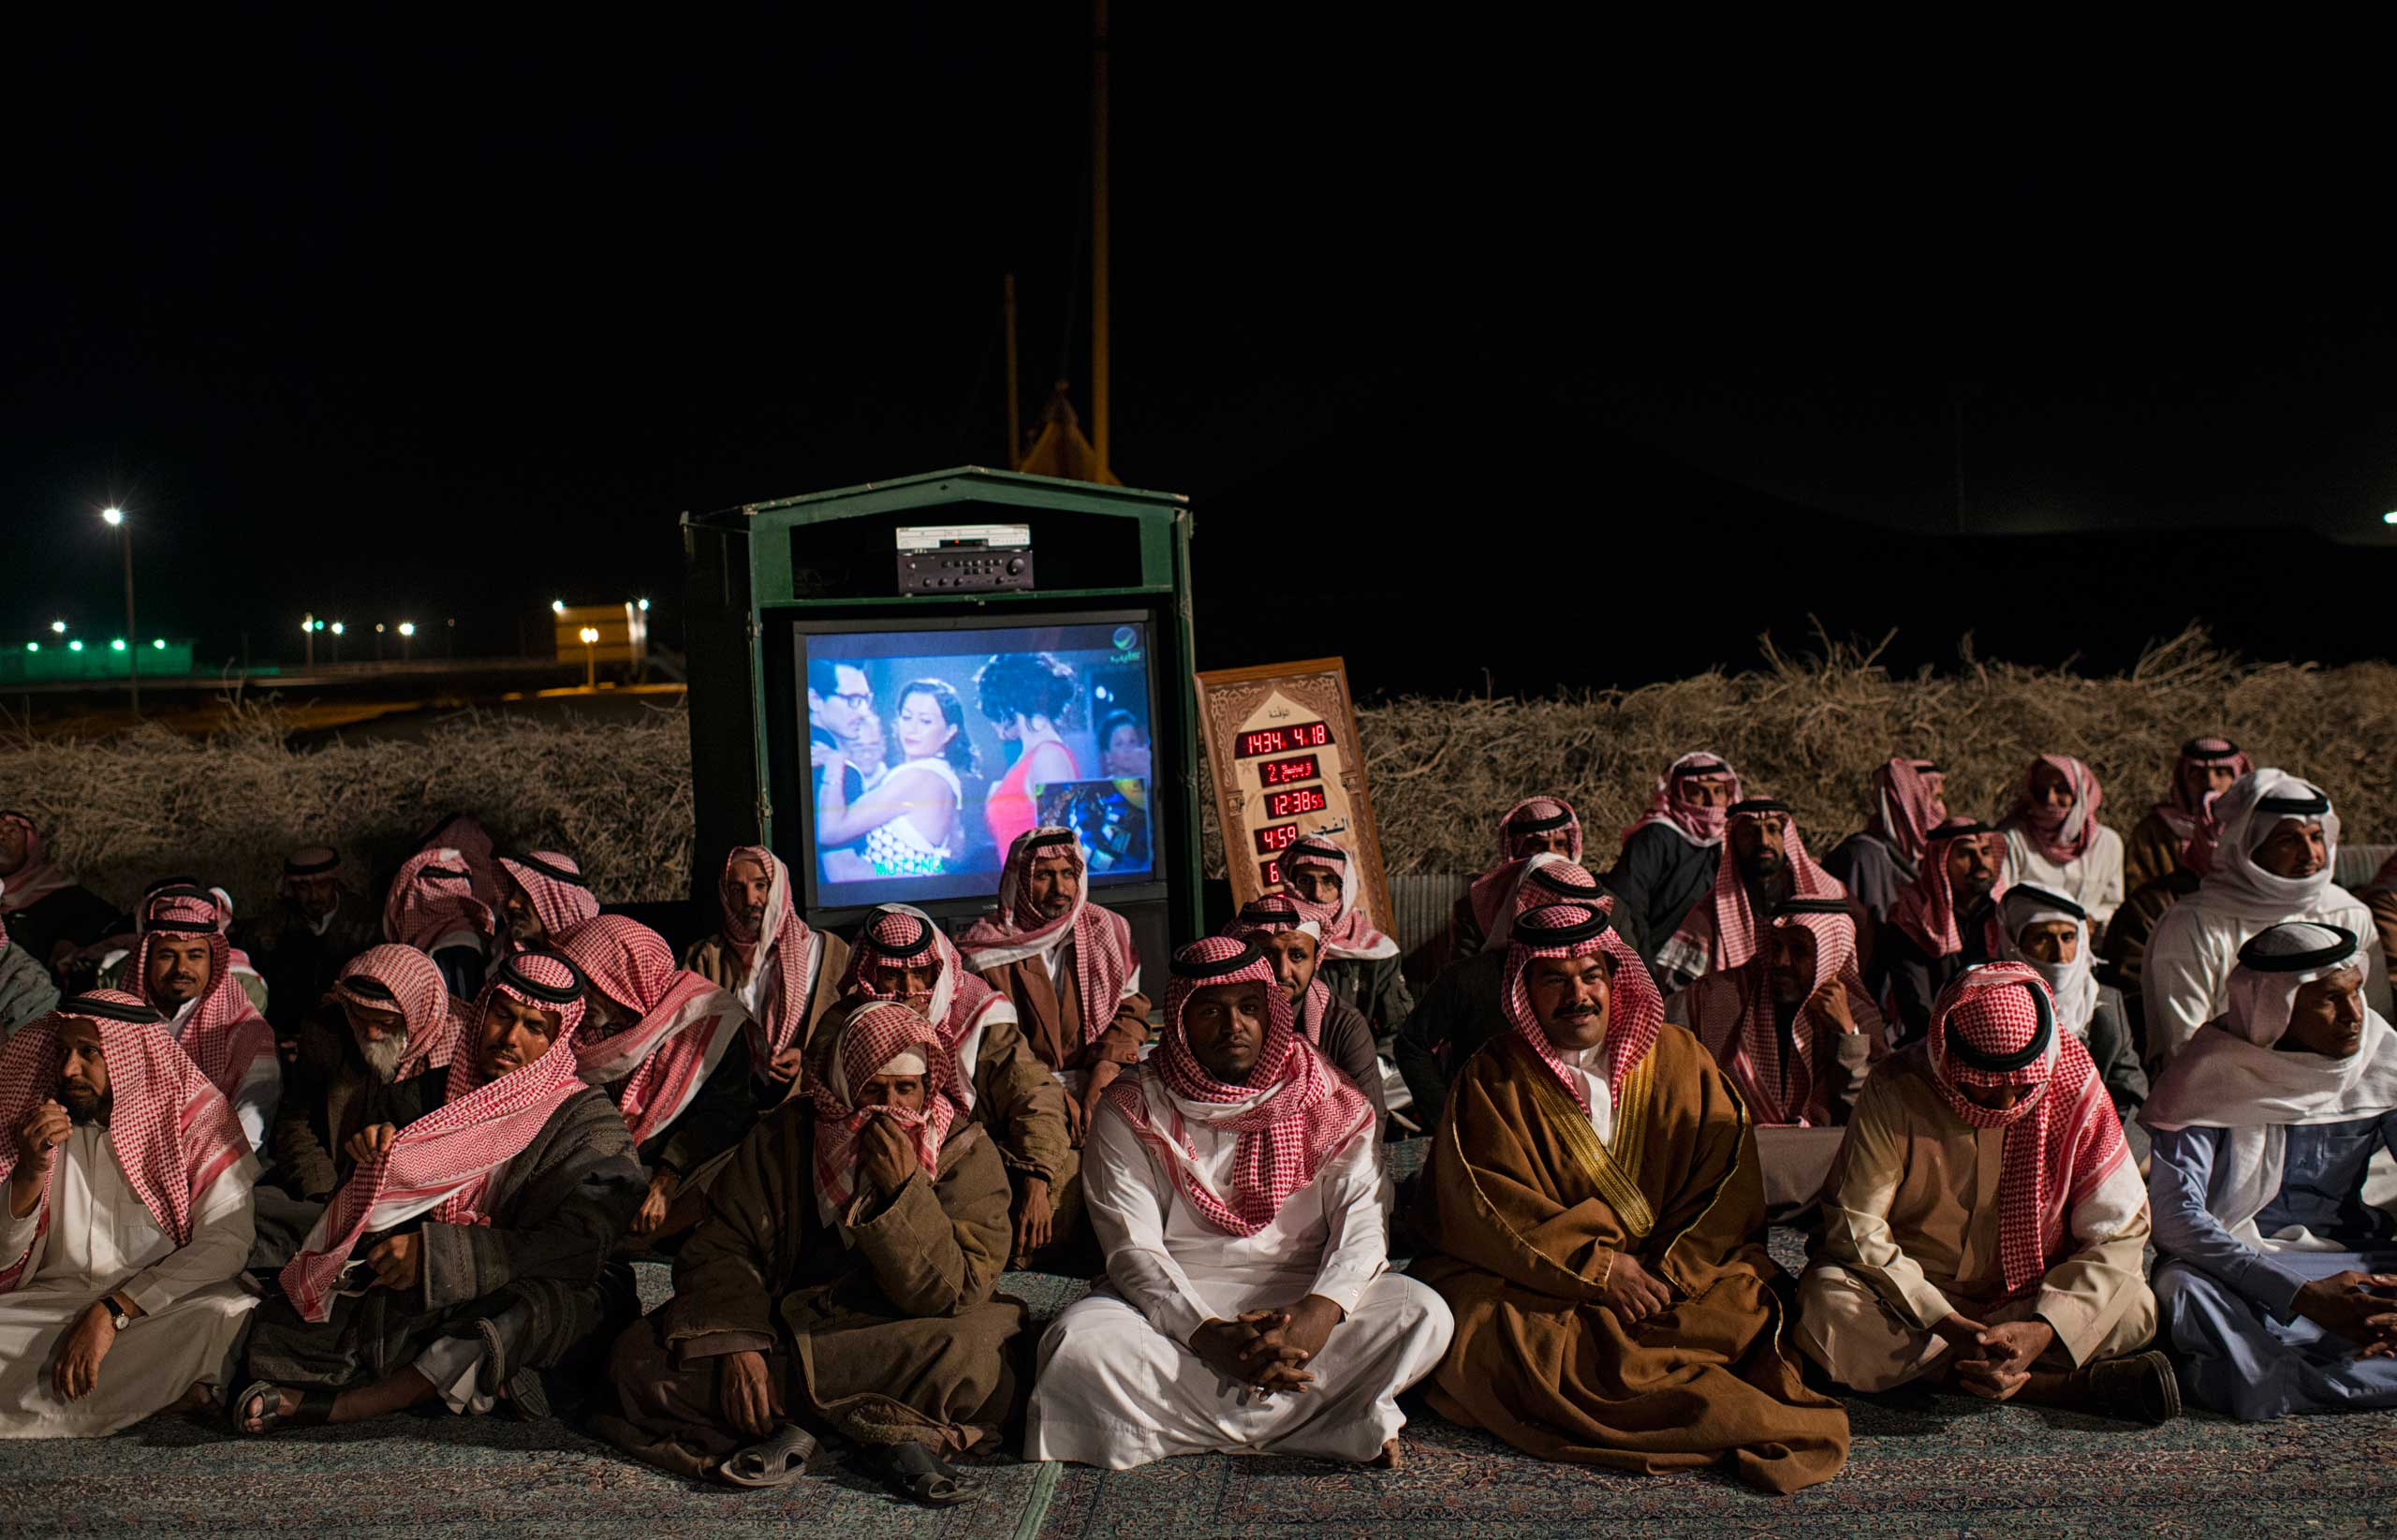 Saudi citizens rest after presenting Saudi billionaire, HRH Prince al Waleed bin Talal, with petitions for his help at a desert camp outside of Riyadh.